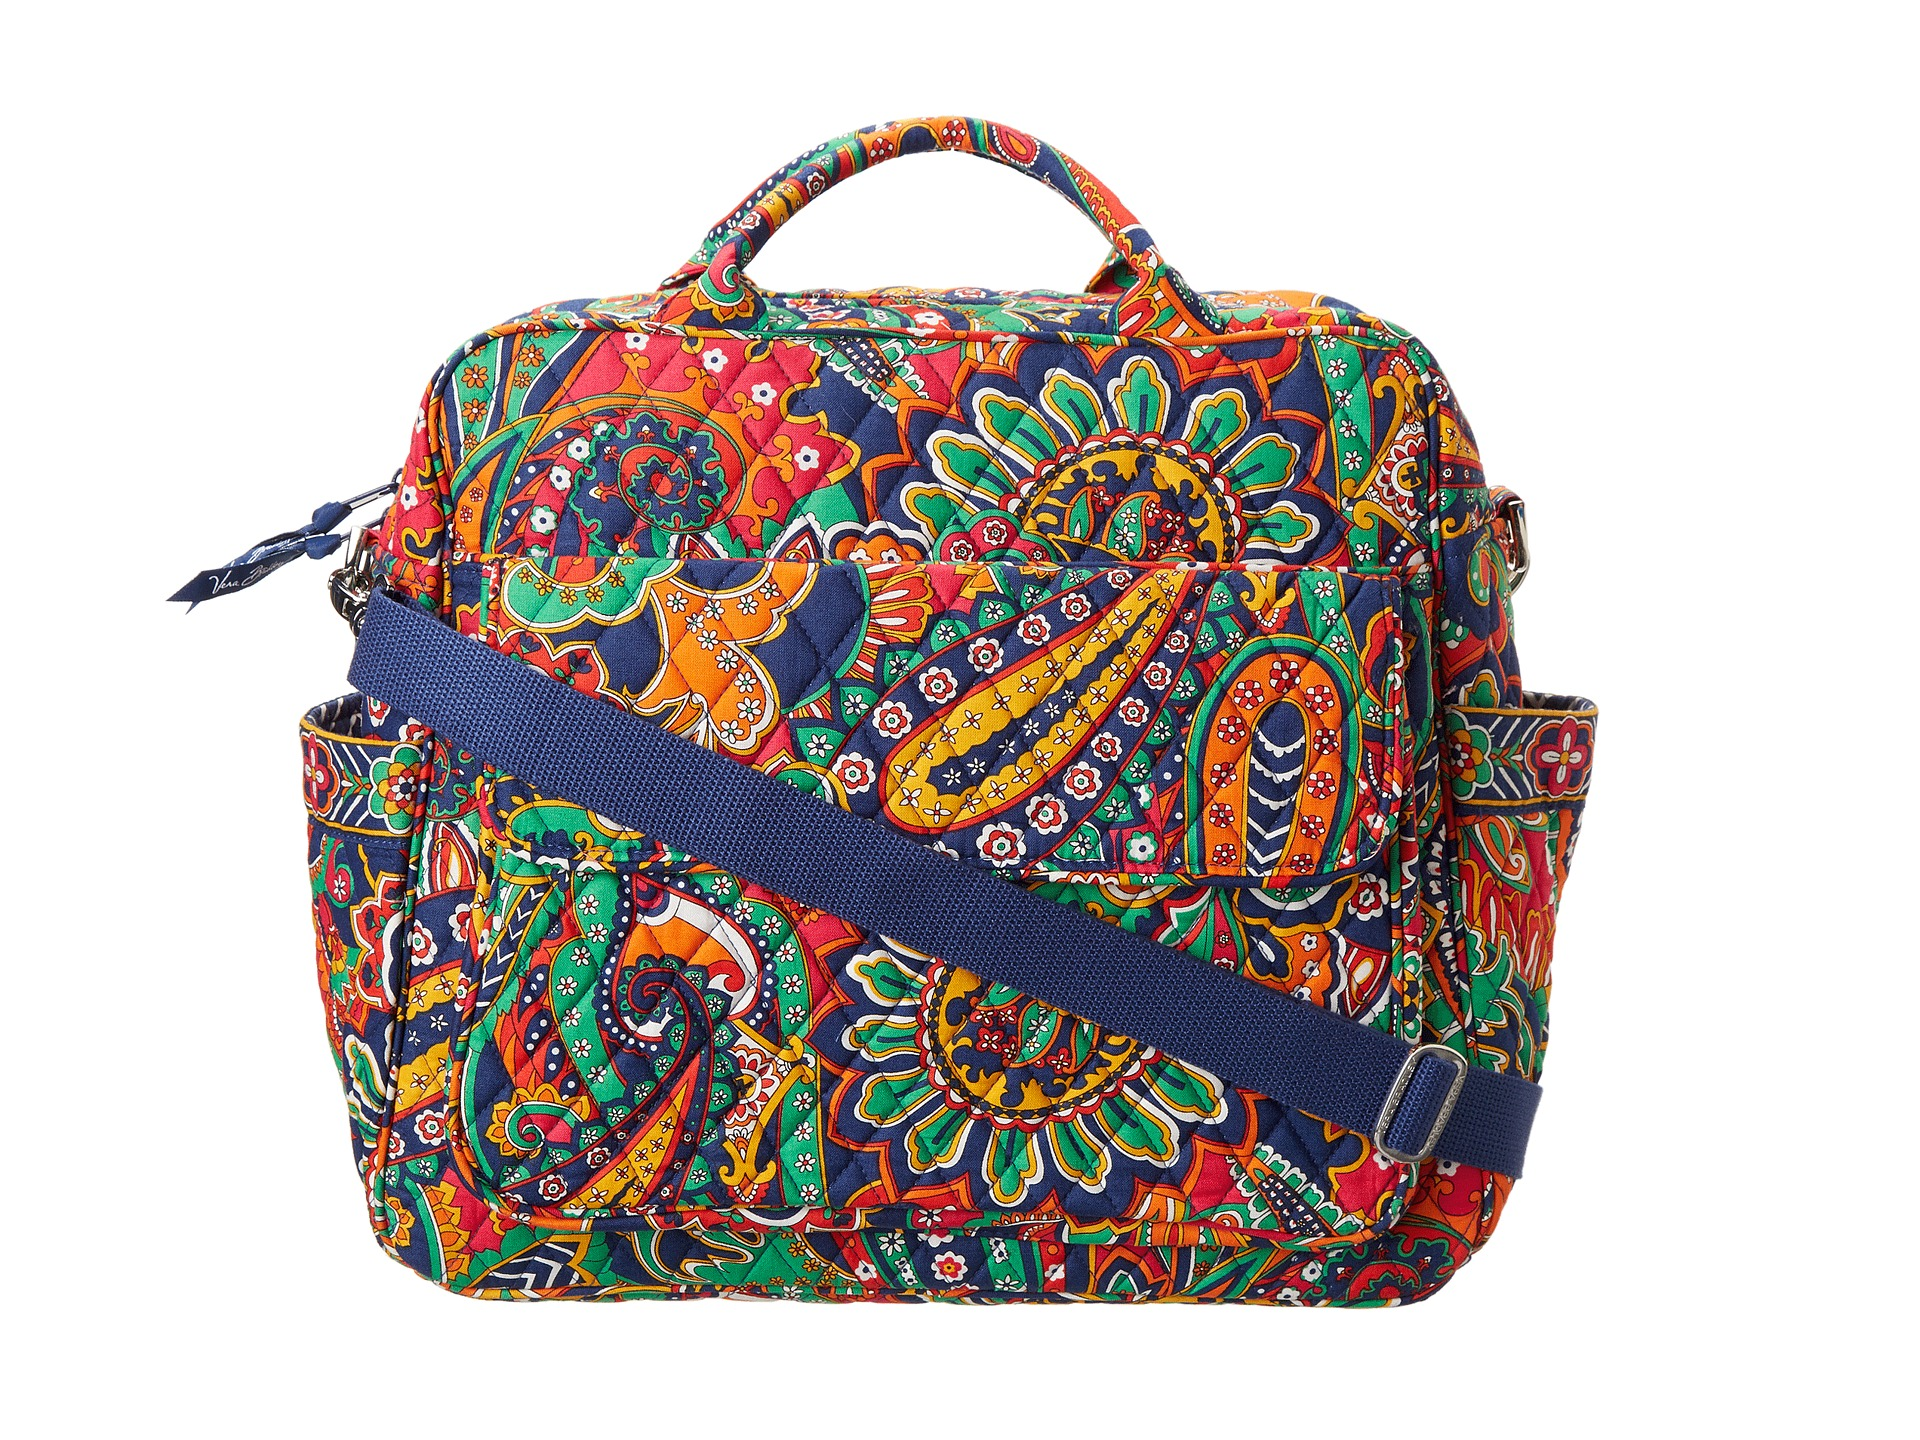 vera bradley convertible baby bag shipped free at zappos. Black Bedroom Furniture Sets. Home Design Ideas